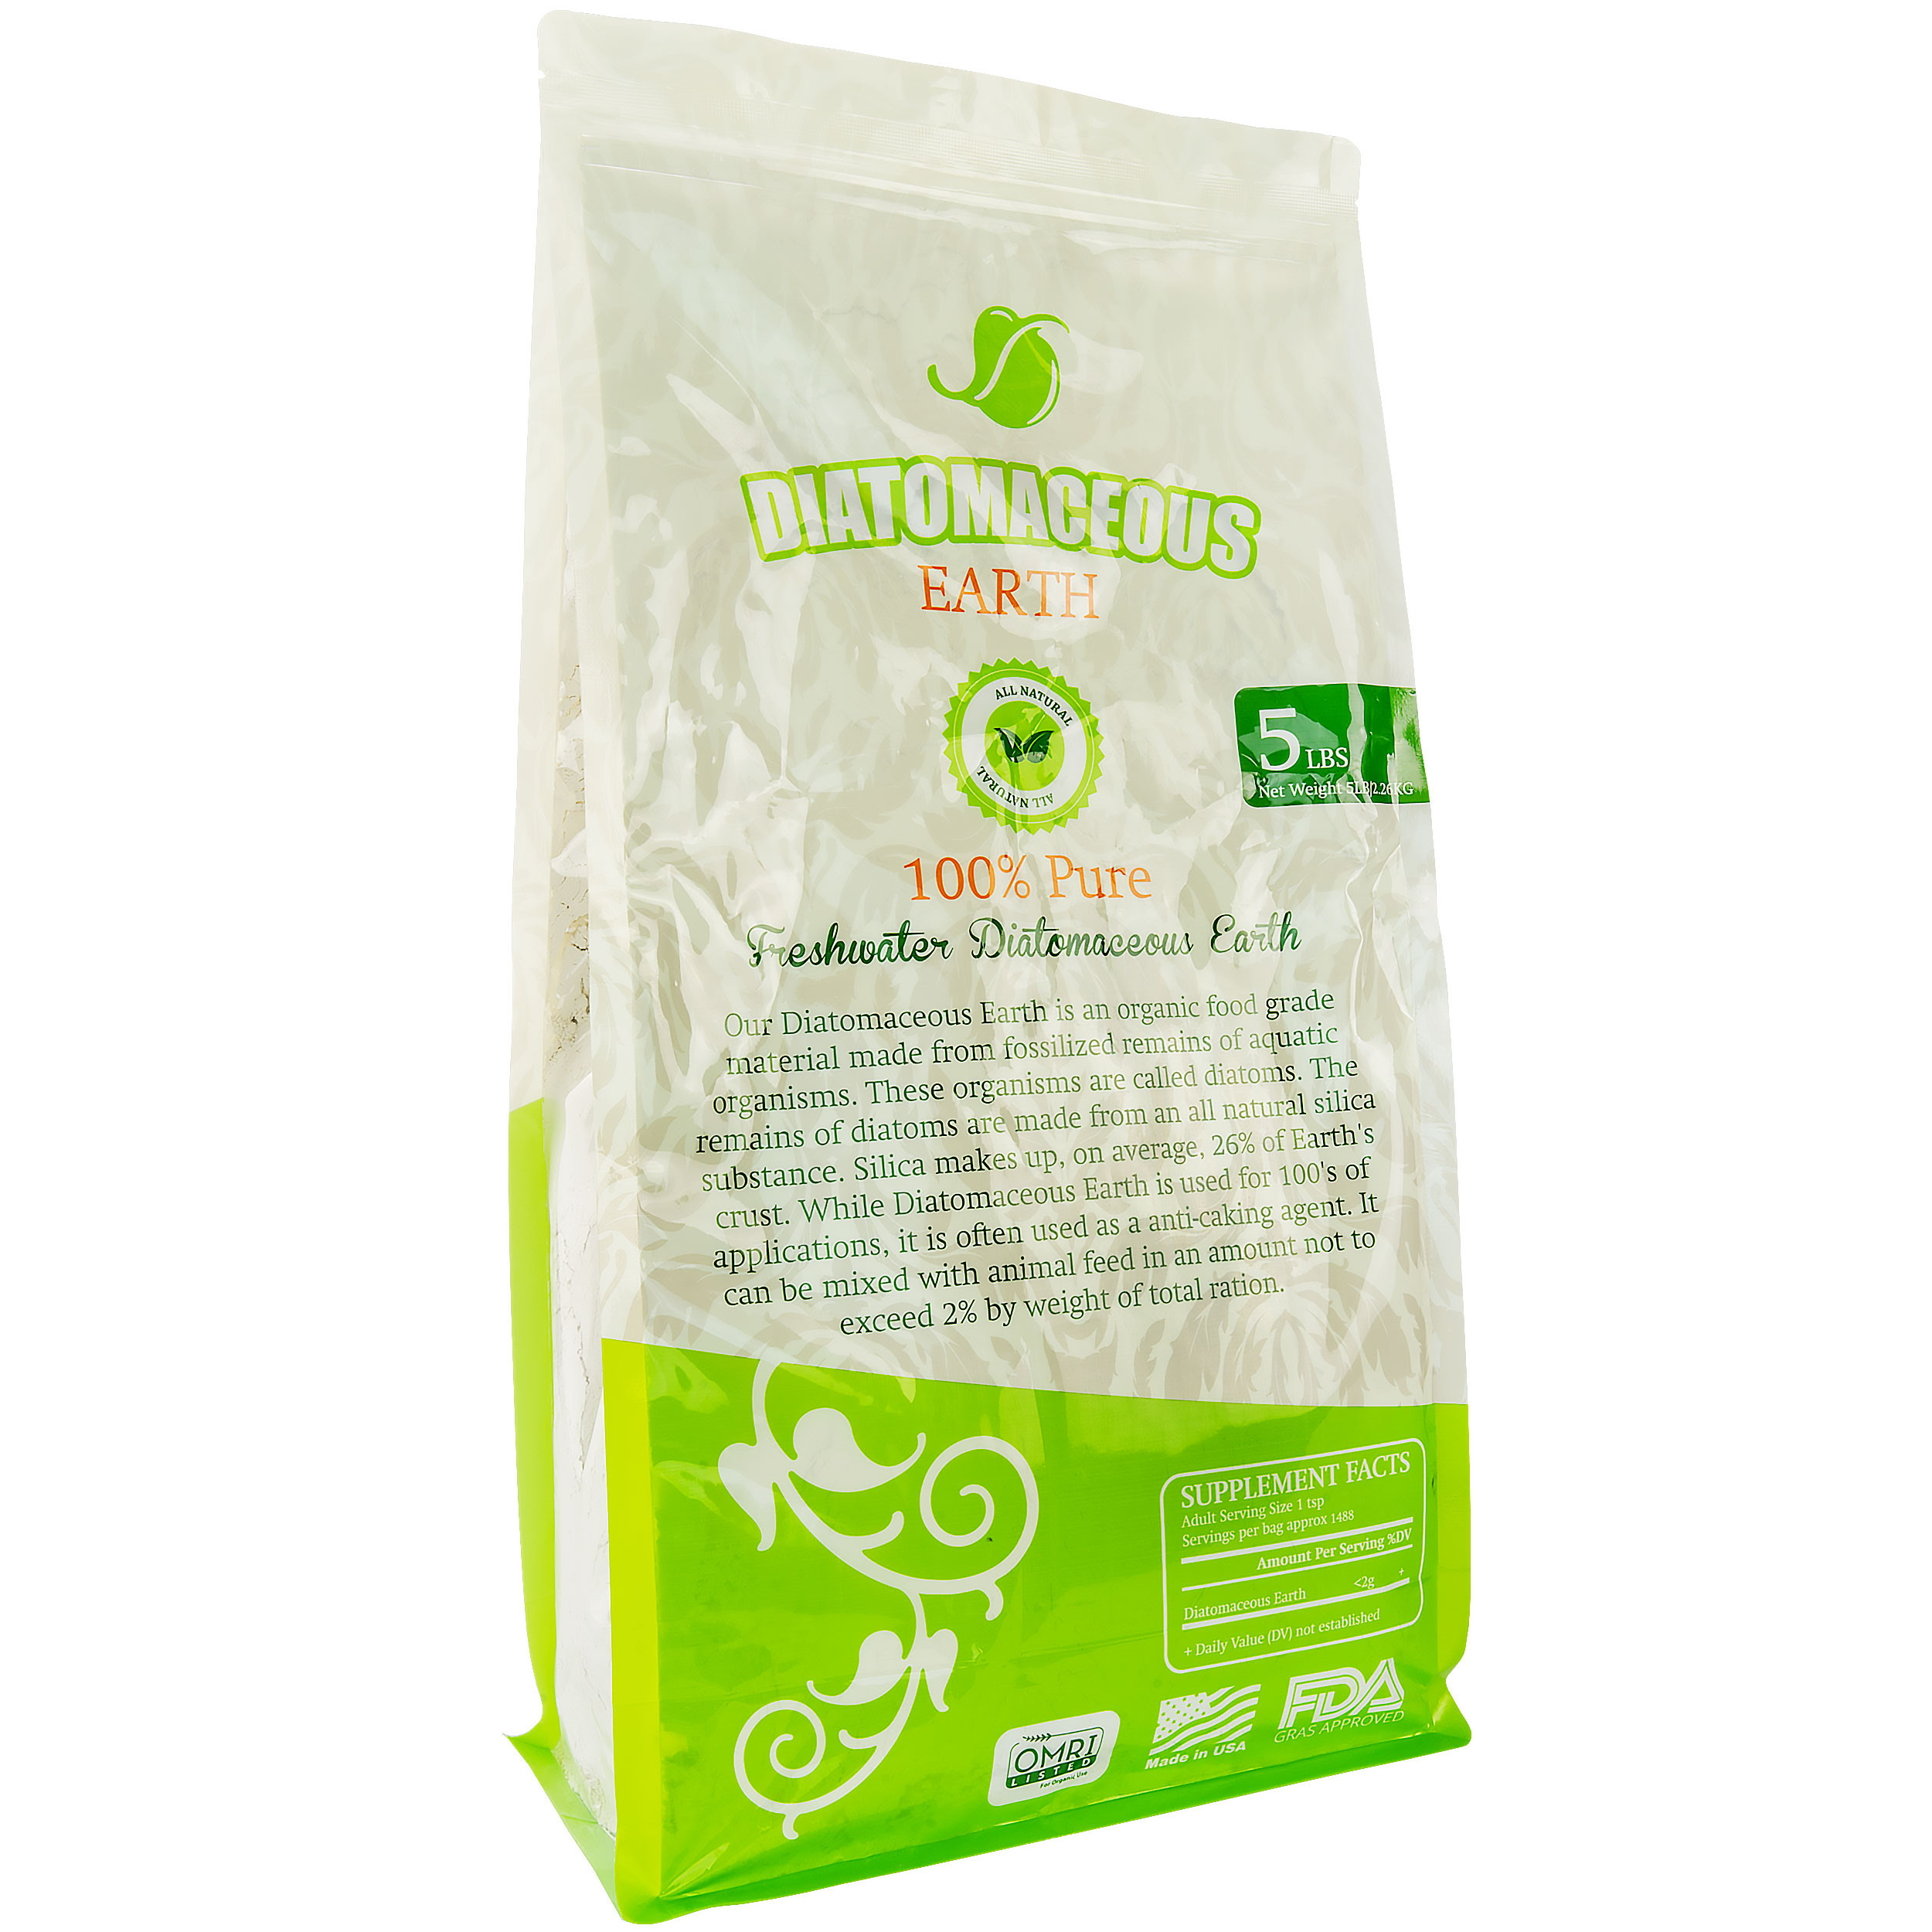 Diatomaceous Earth Food Grade 100% Pure